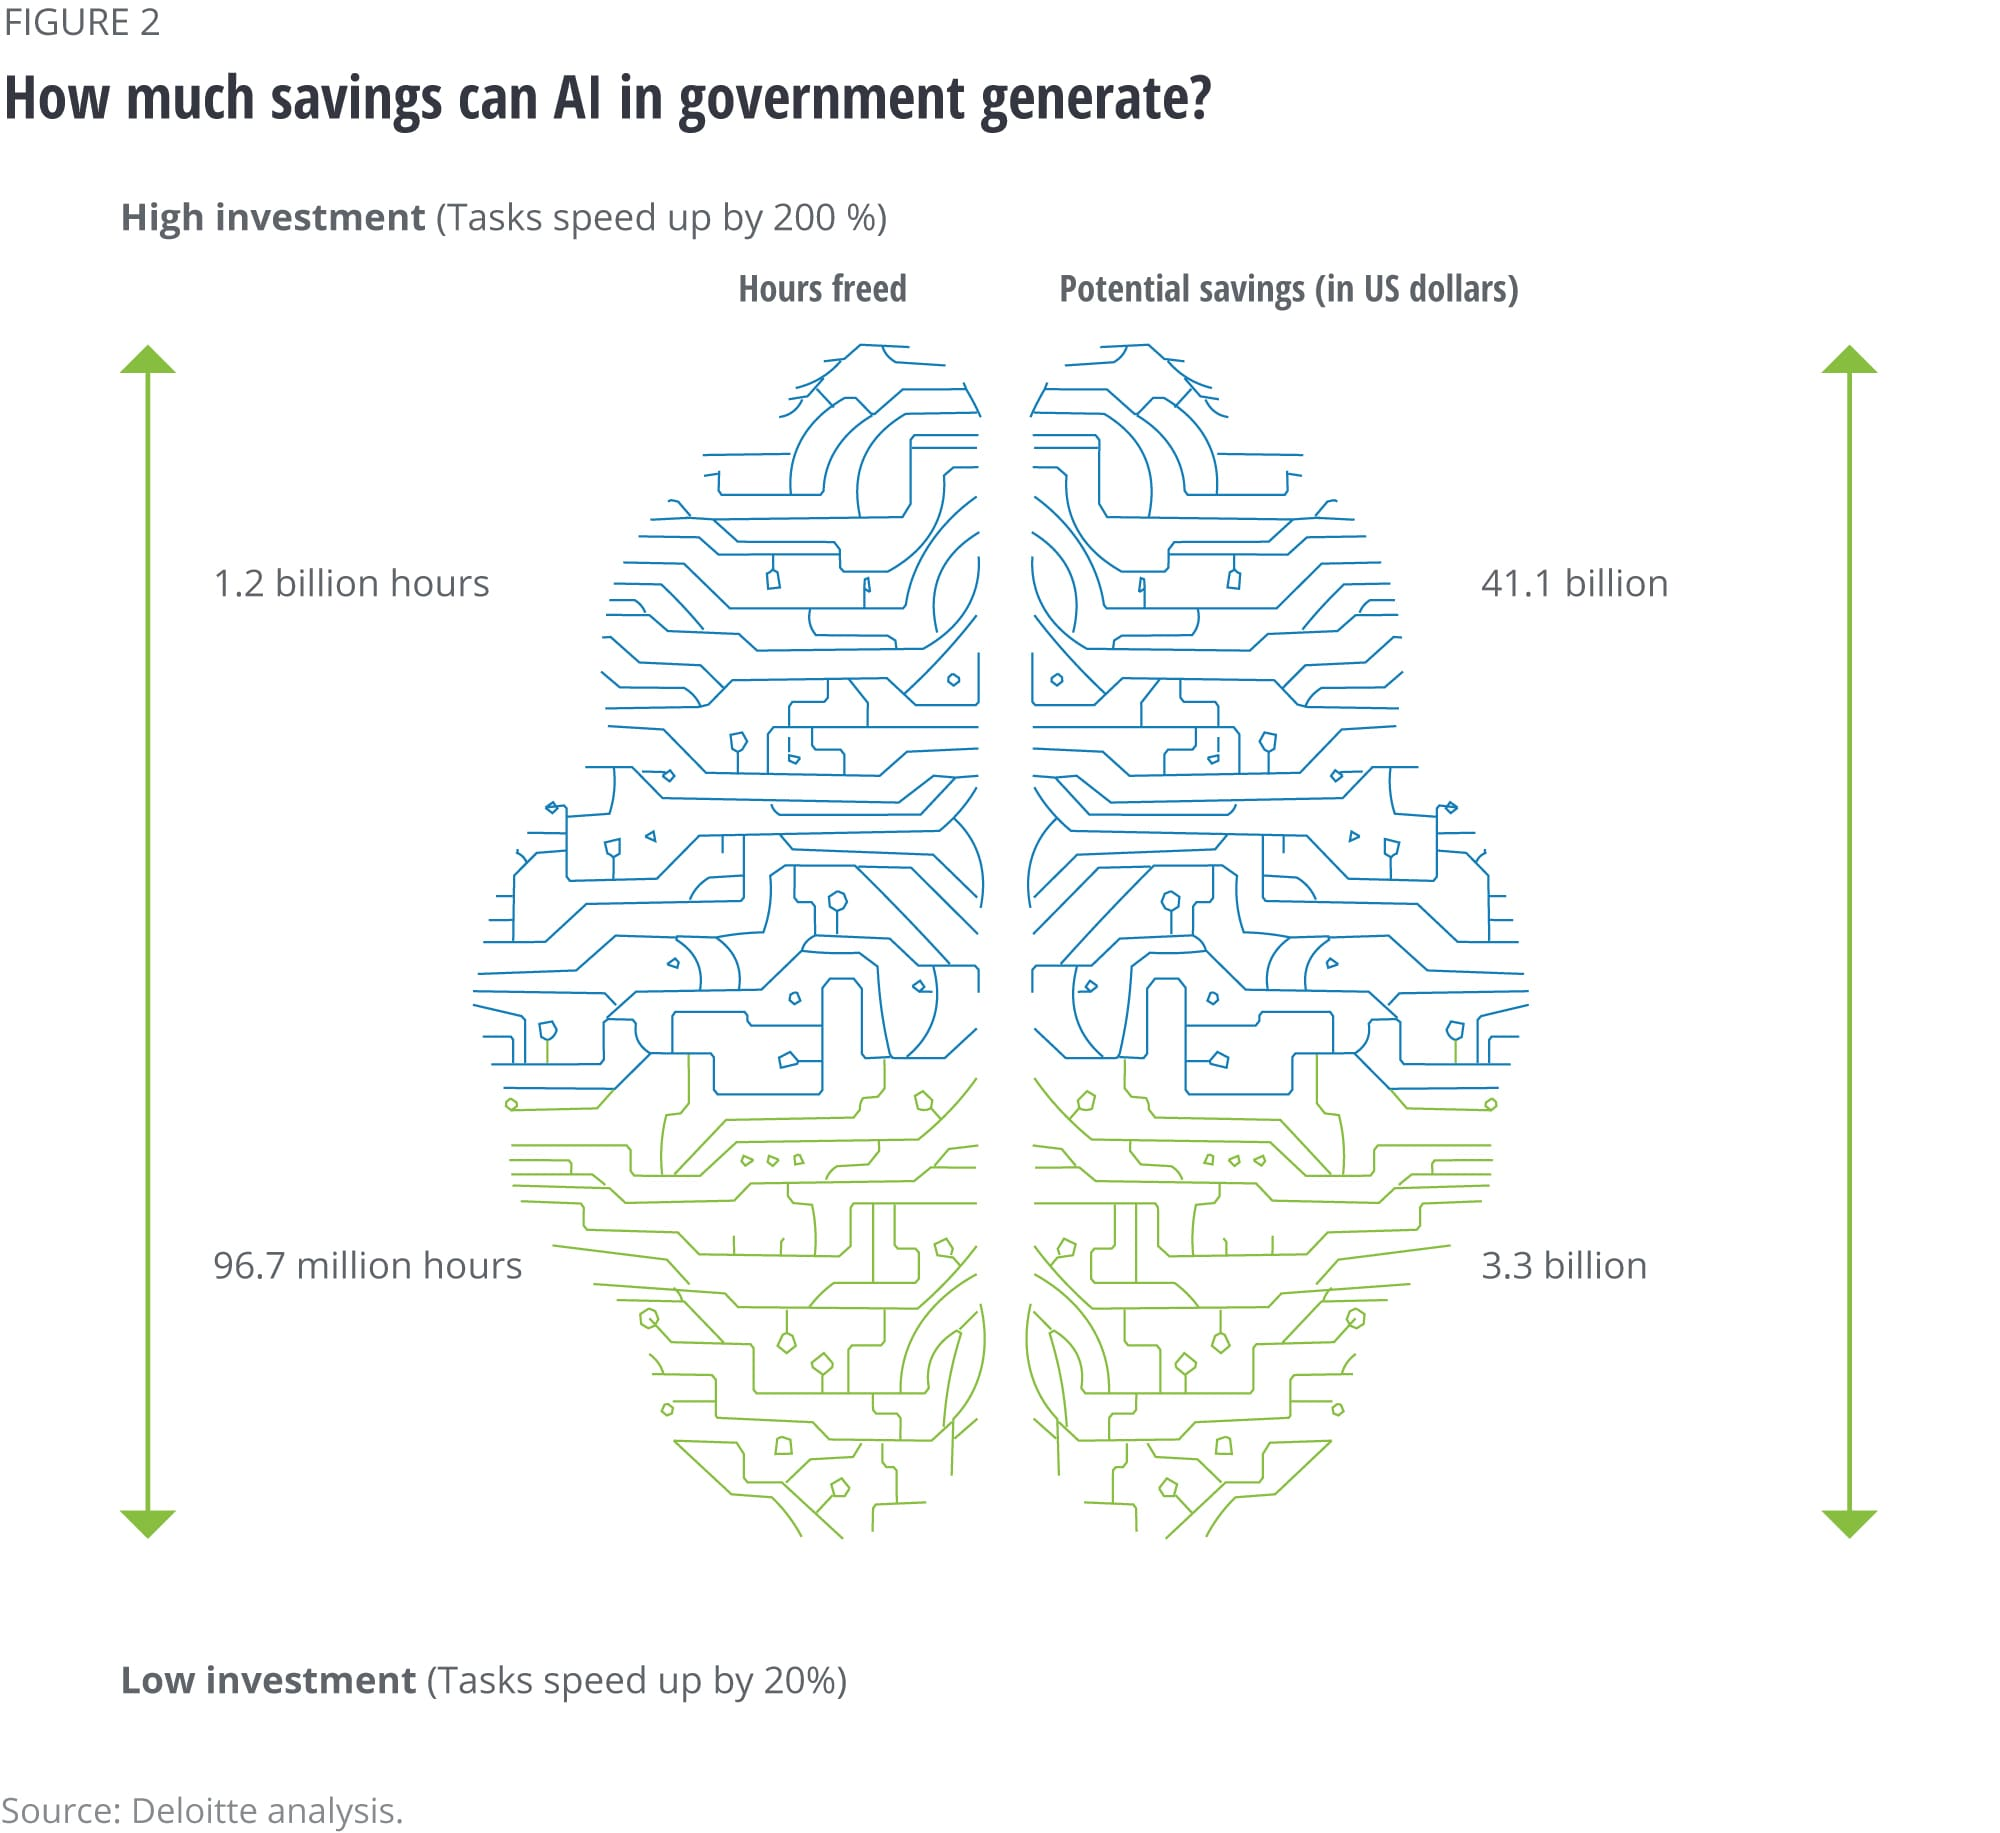 How much savings can AI in government generate?